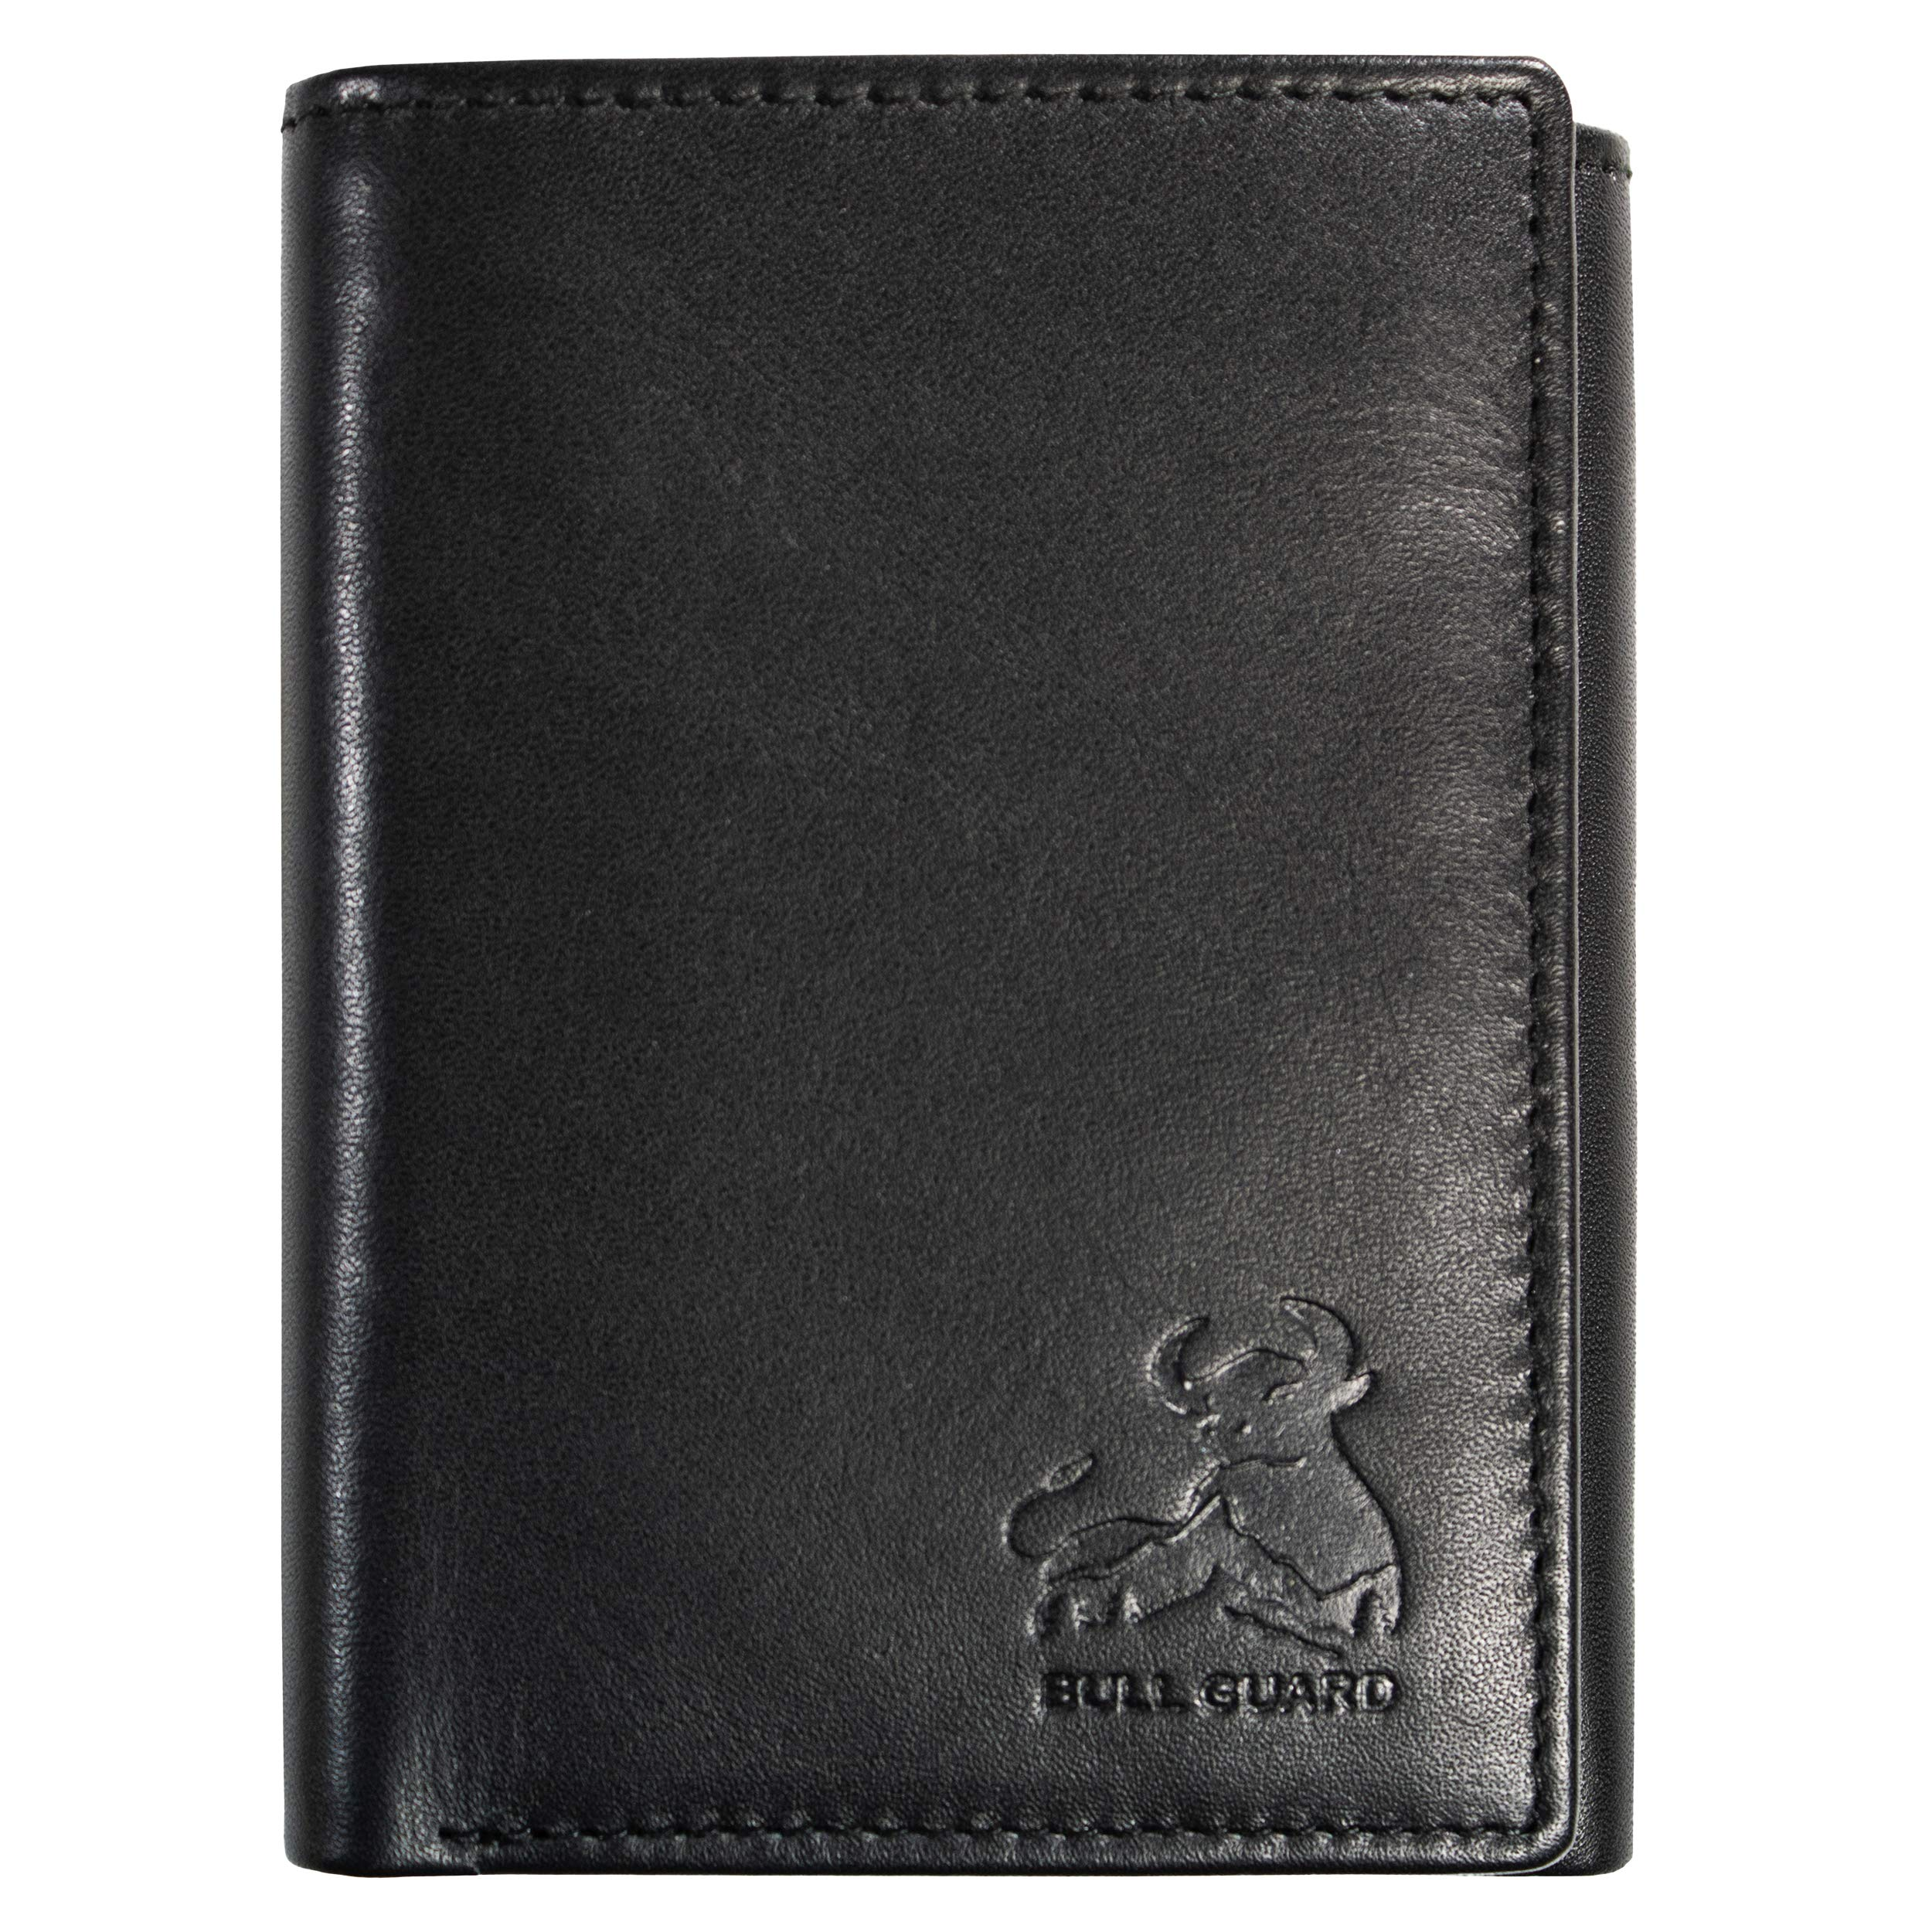 Bull Guard Genuine Nappa Leather Trifold Wallet For Men RFID And ID Window by BULL GUARD